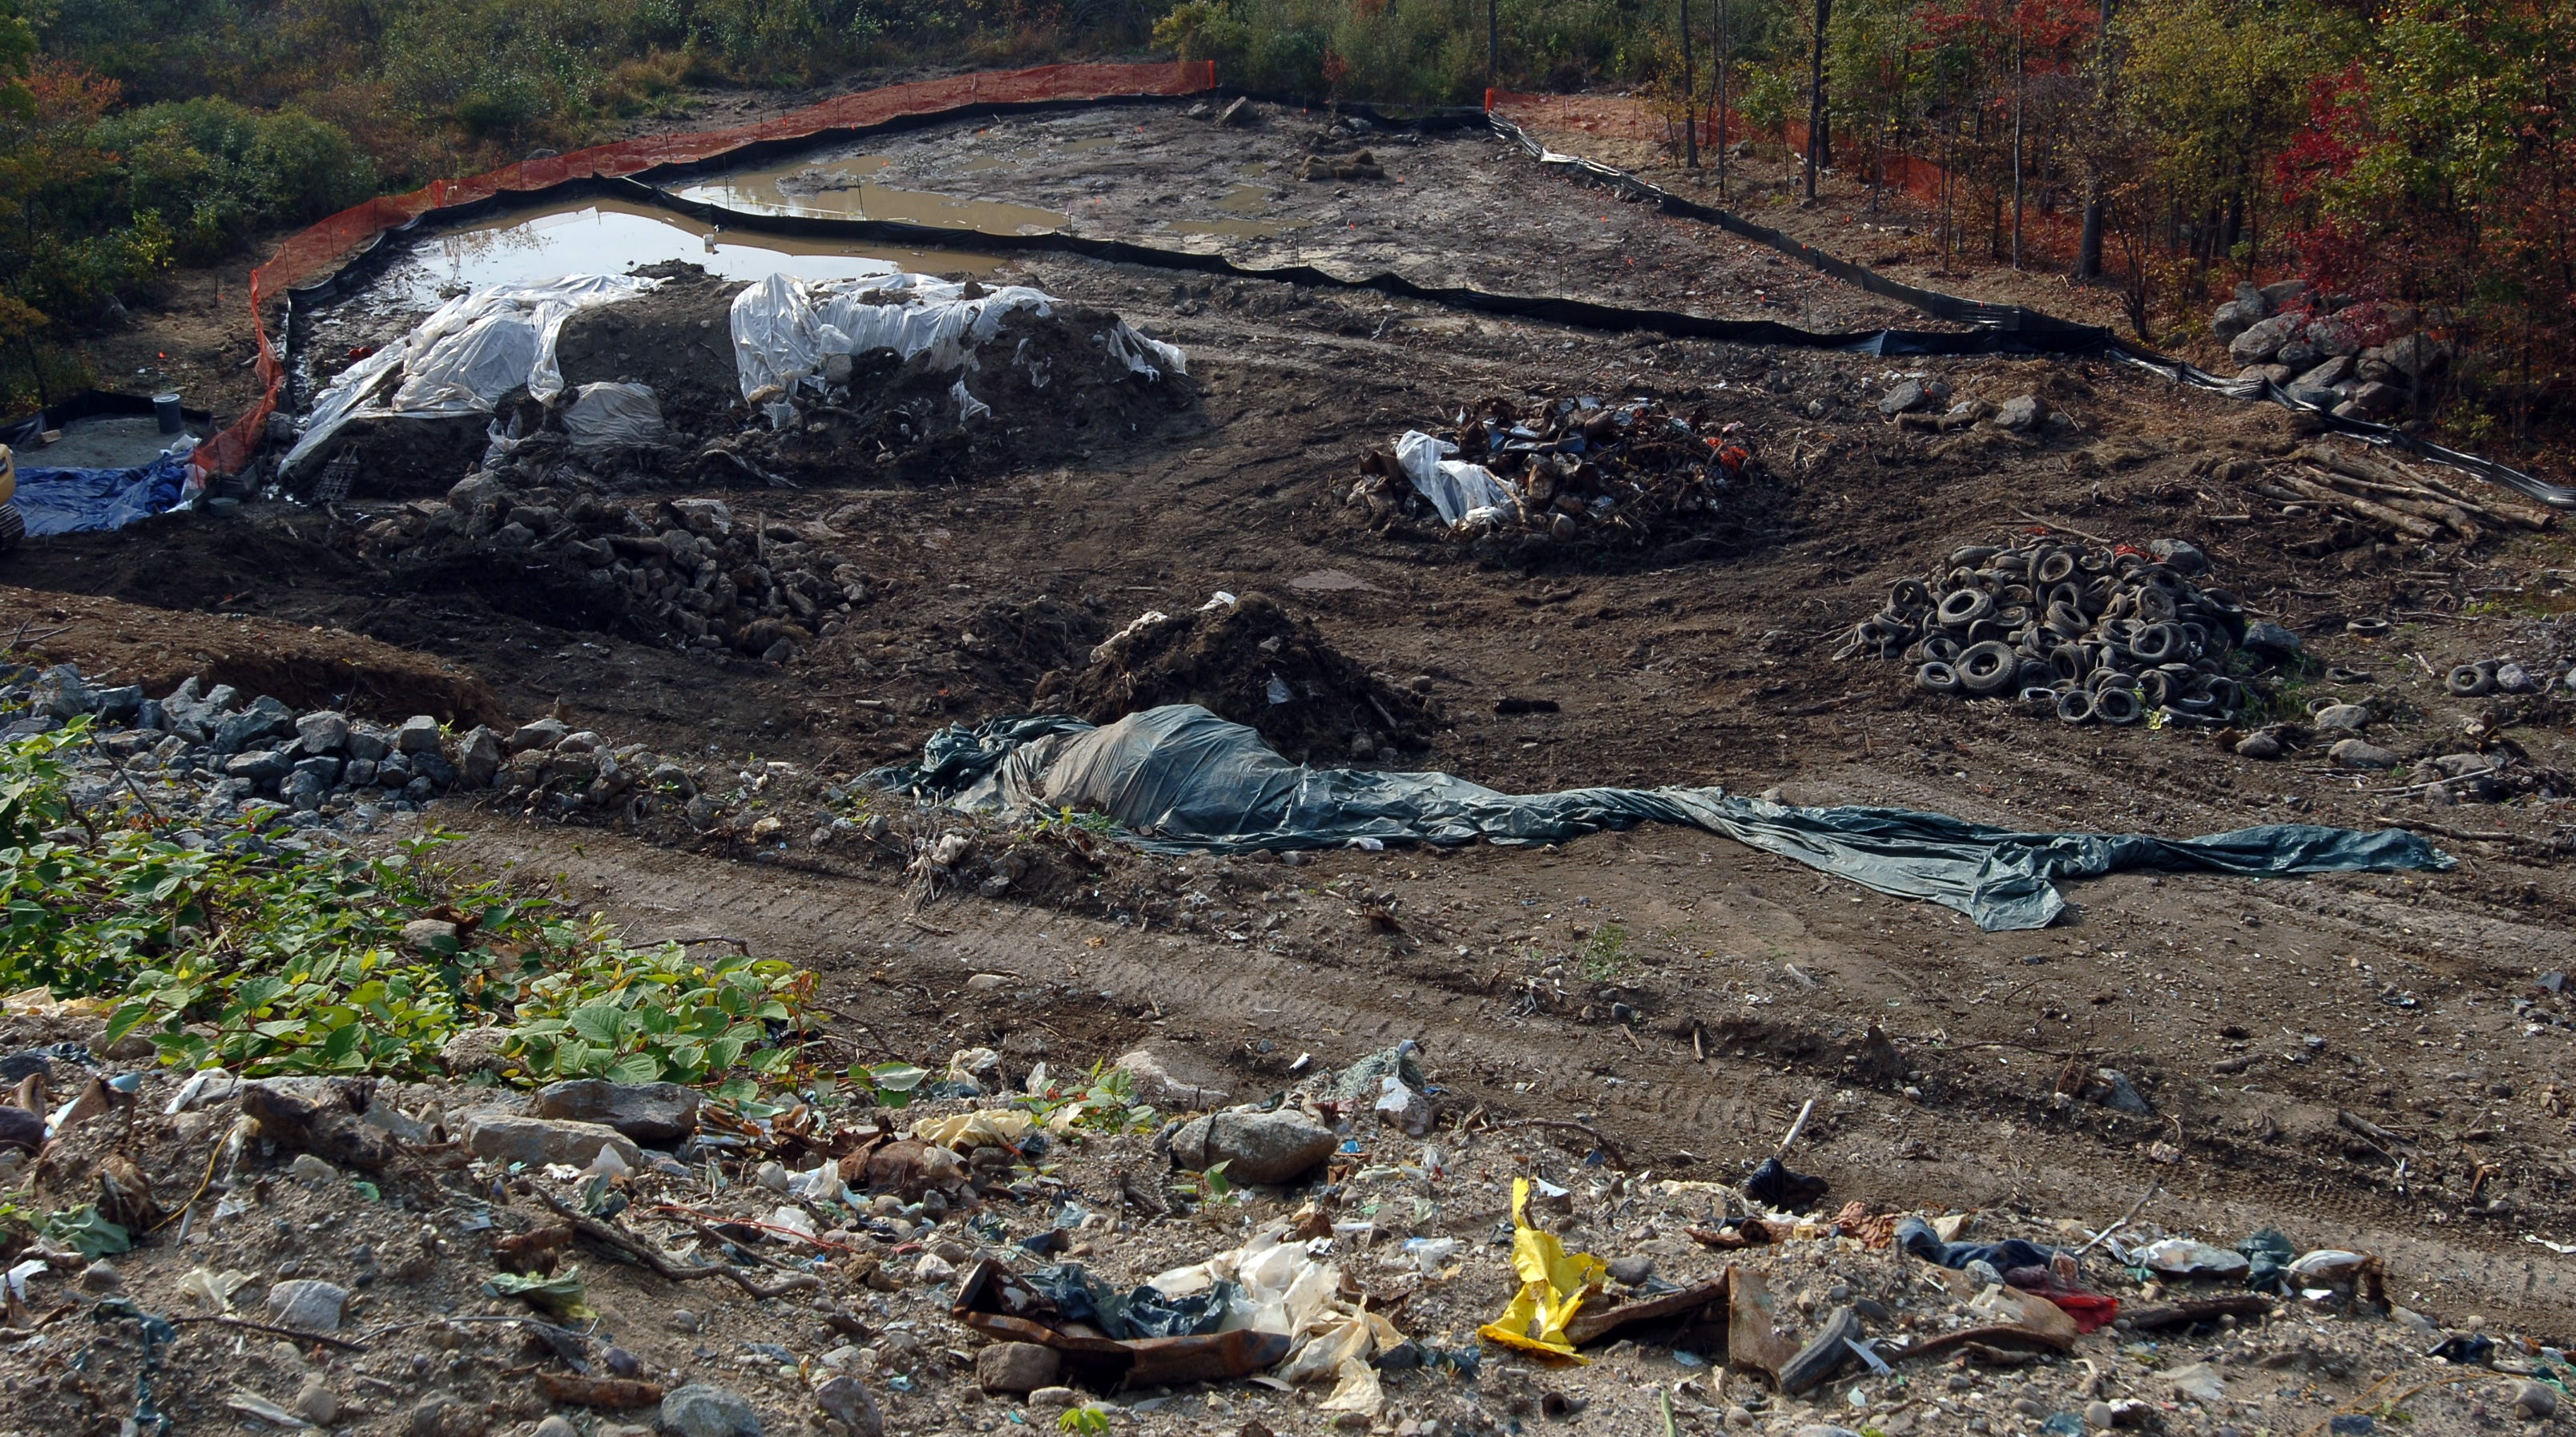 Ringwood awaits state's say on Ford Superfund soil cleanup after approving cap